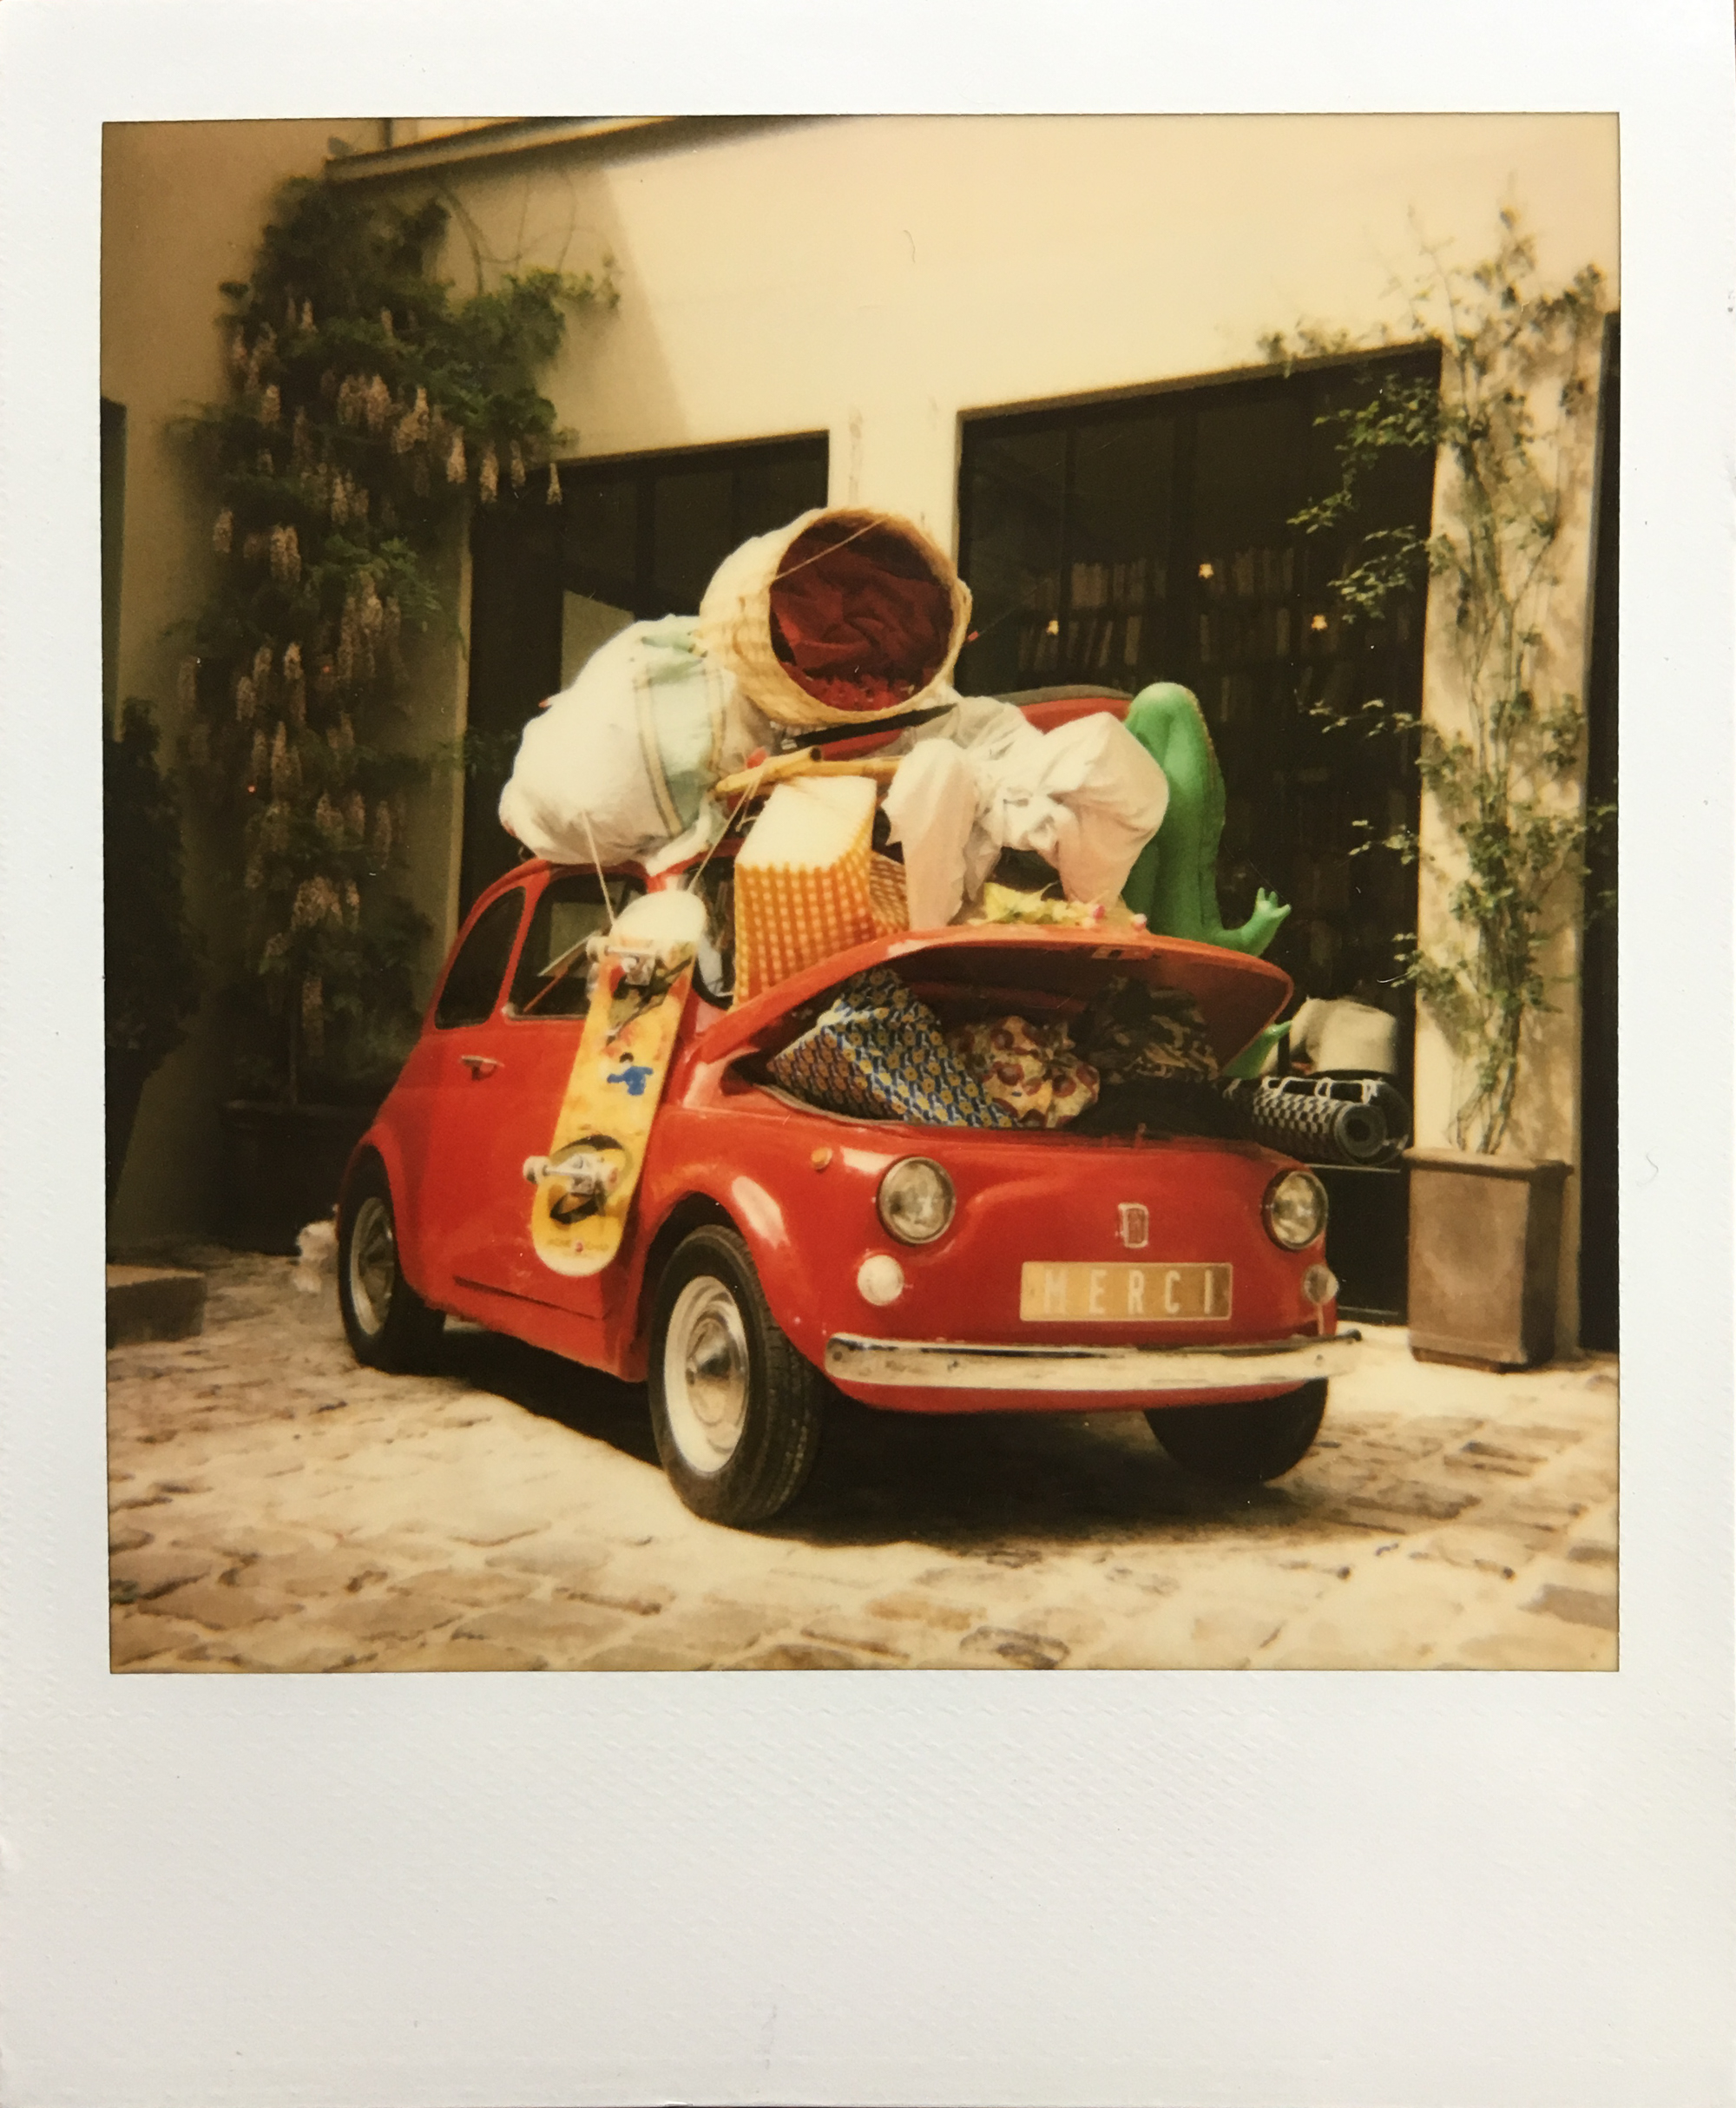 Little Bambina Car loaded with stuff outside Merci Paris. Polaroid sun600. By Leonie Wise